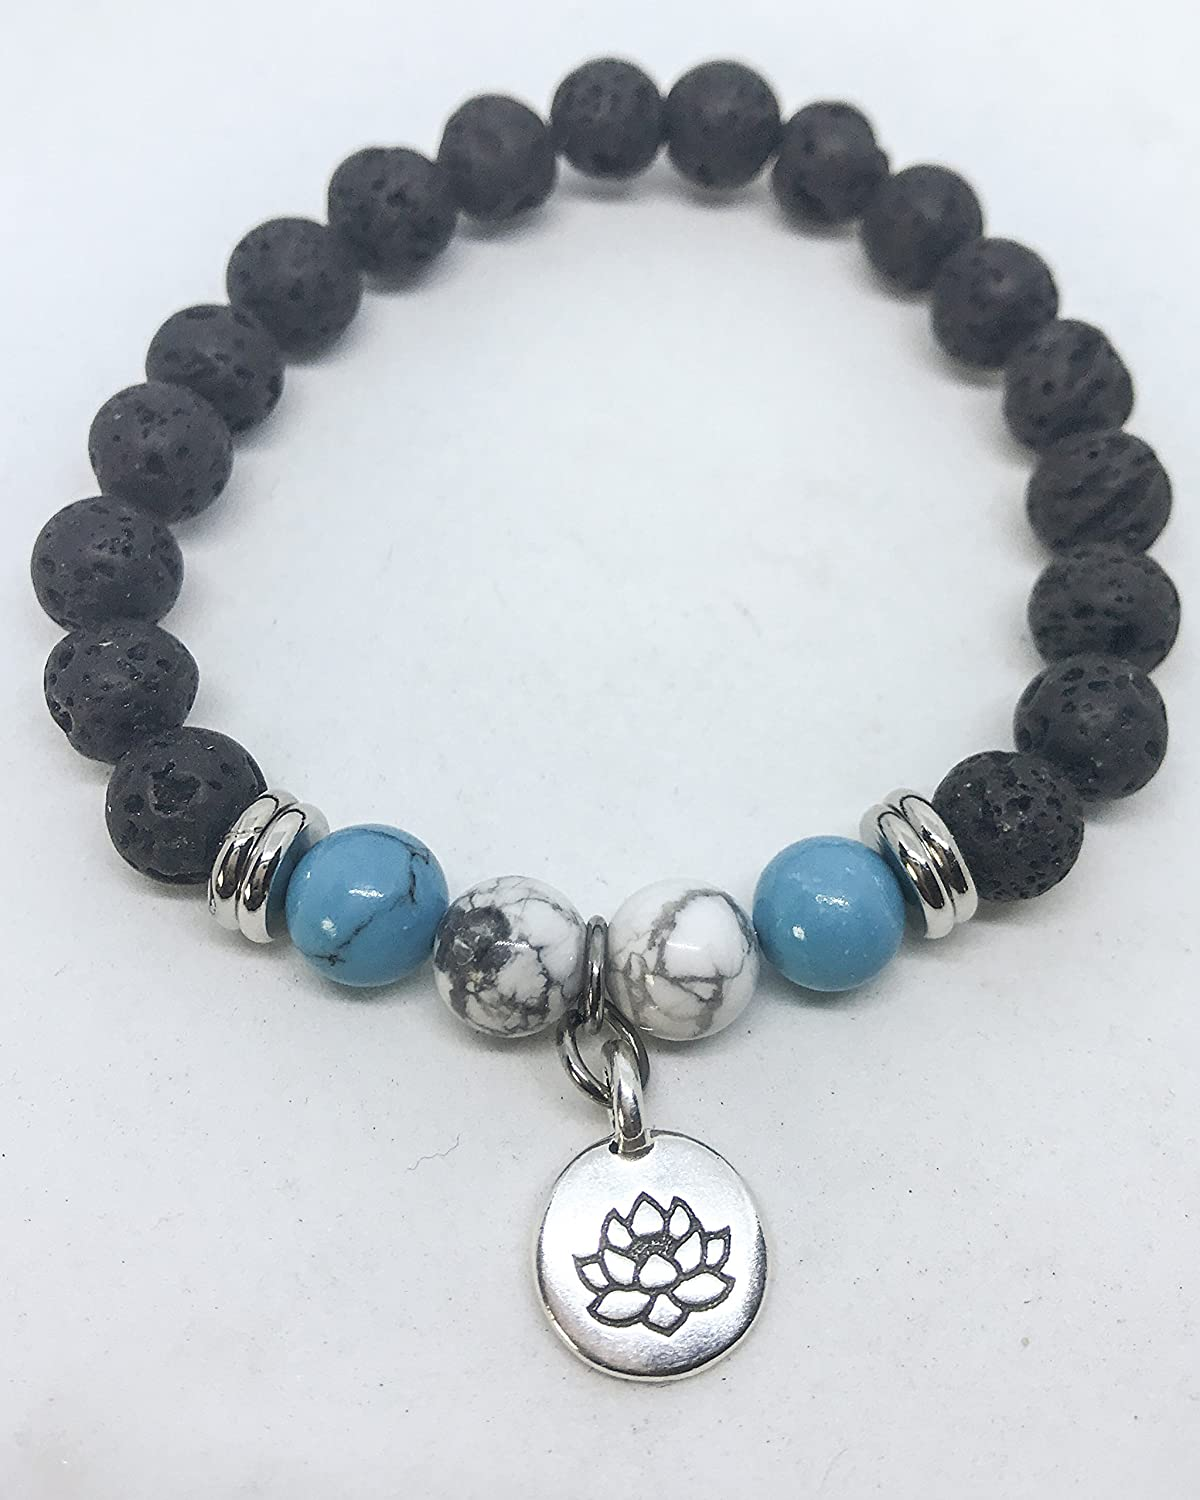 Aromatherapy Diffuser Bracelet with Turquoise, White Howlite and a Lotus Charm